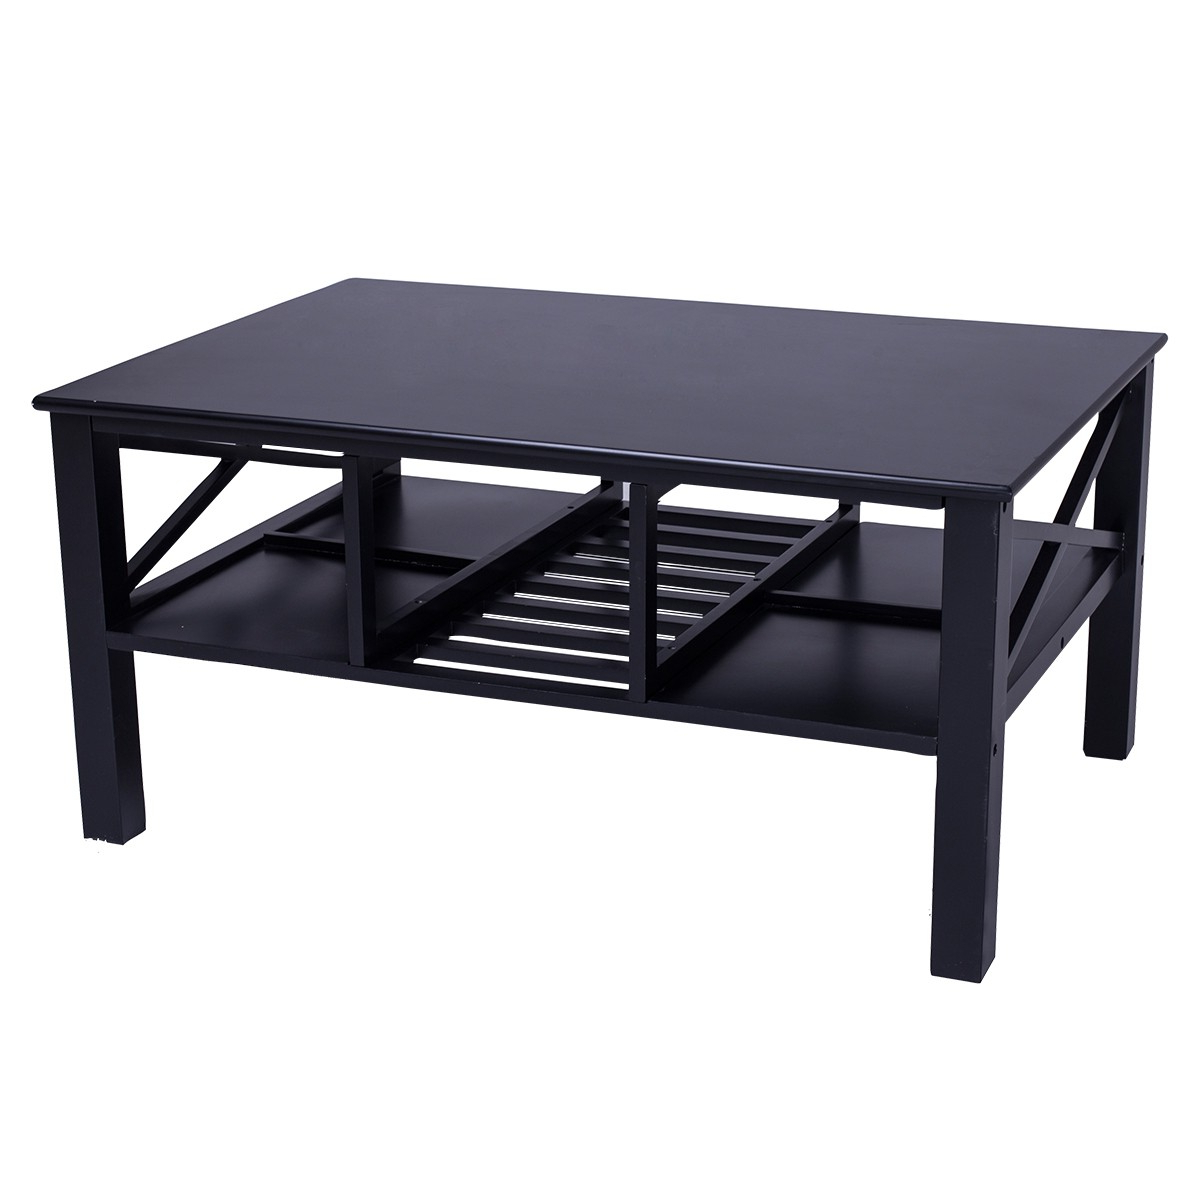 Famous Awesome Coffee Table Black D I N A Friday Glass Deal And White Gloss Inside Darbuka Black Coffee Tables (View 9 of 20)